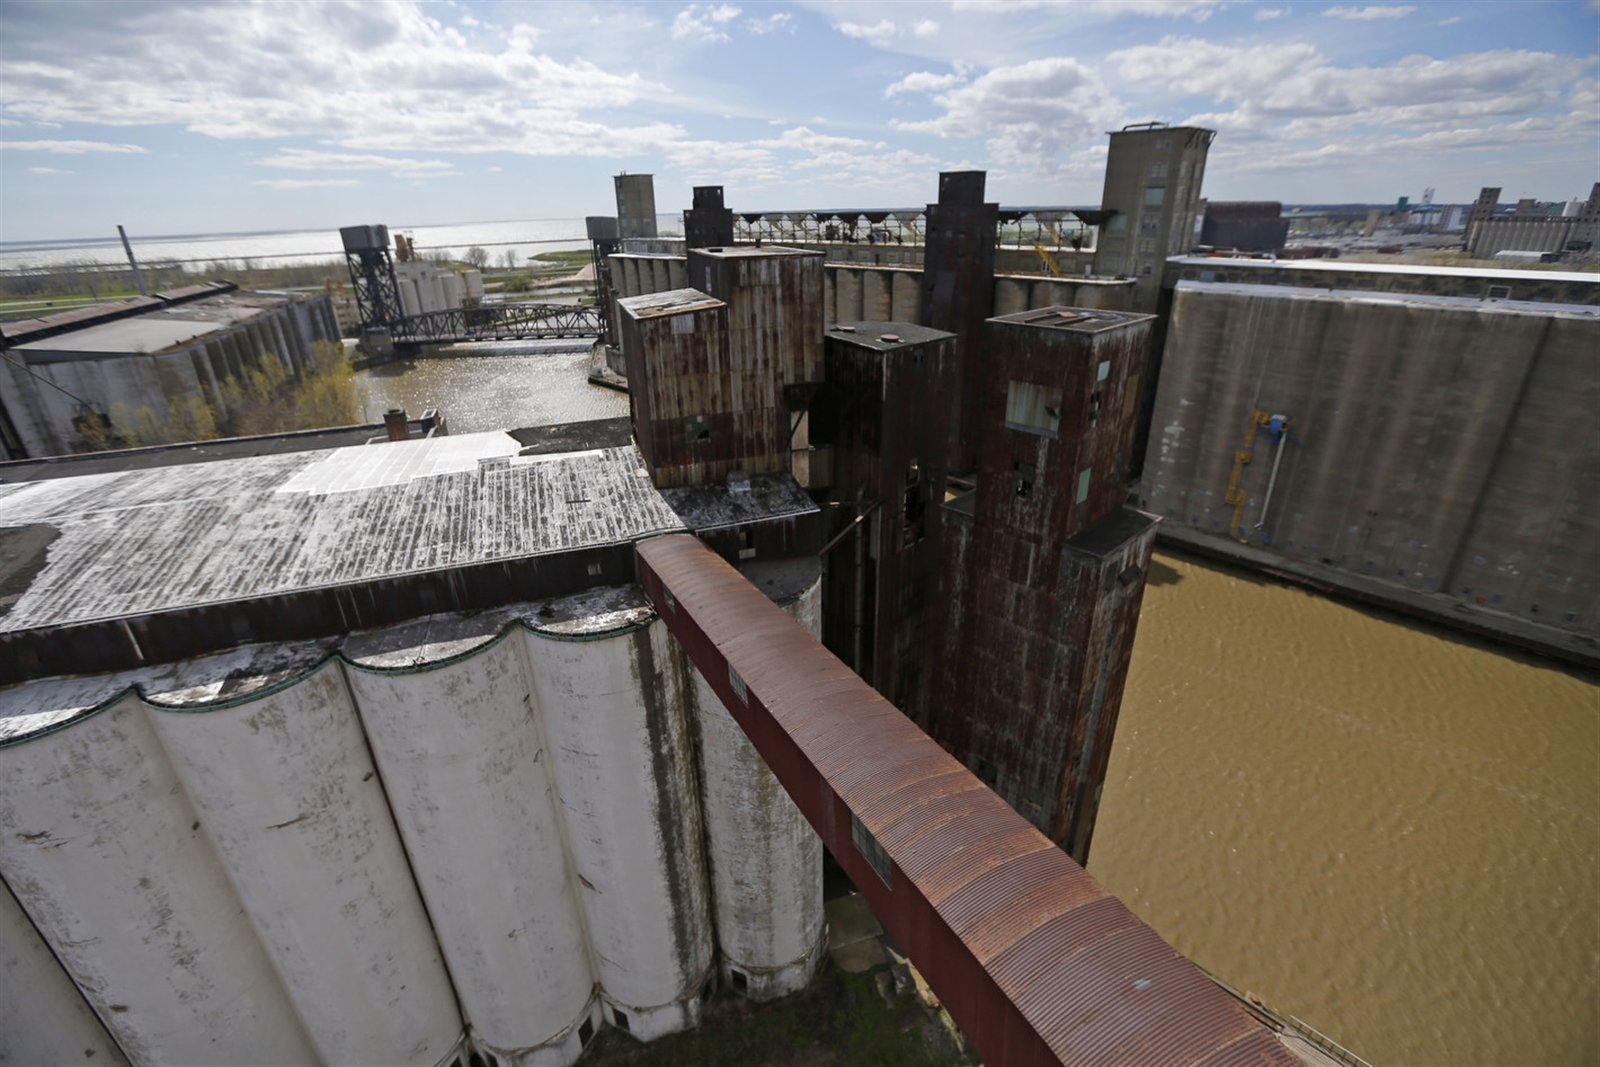 Silo City is part of Buffalo's 'Elevator Alley,' which makes up the densest collection of concrete grain elevators in the world. (Robert Kirkham/Buffalo News)